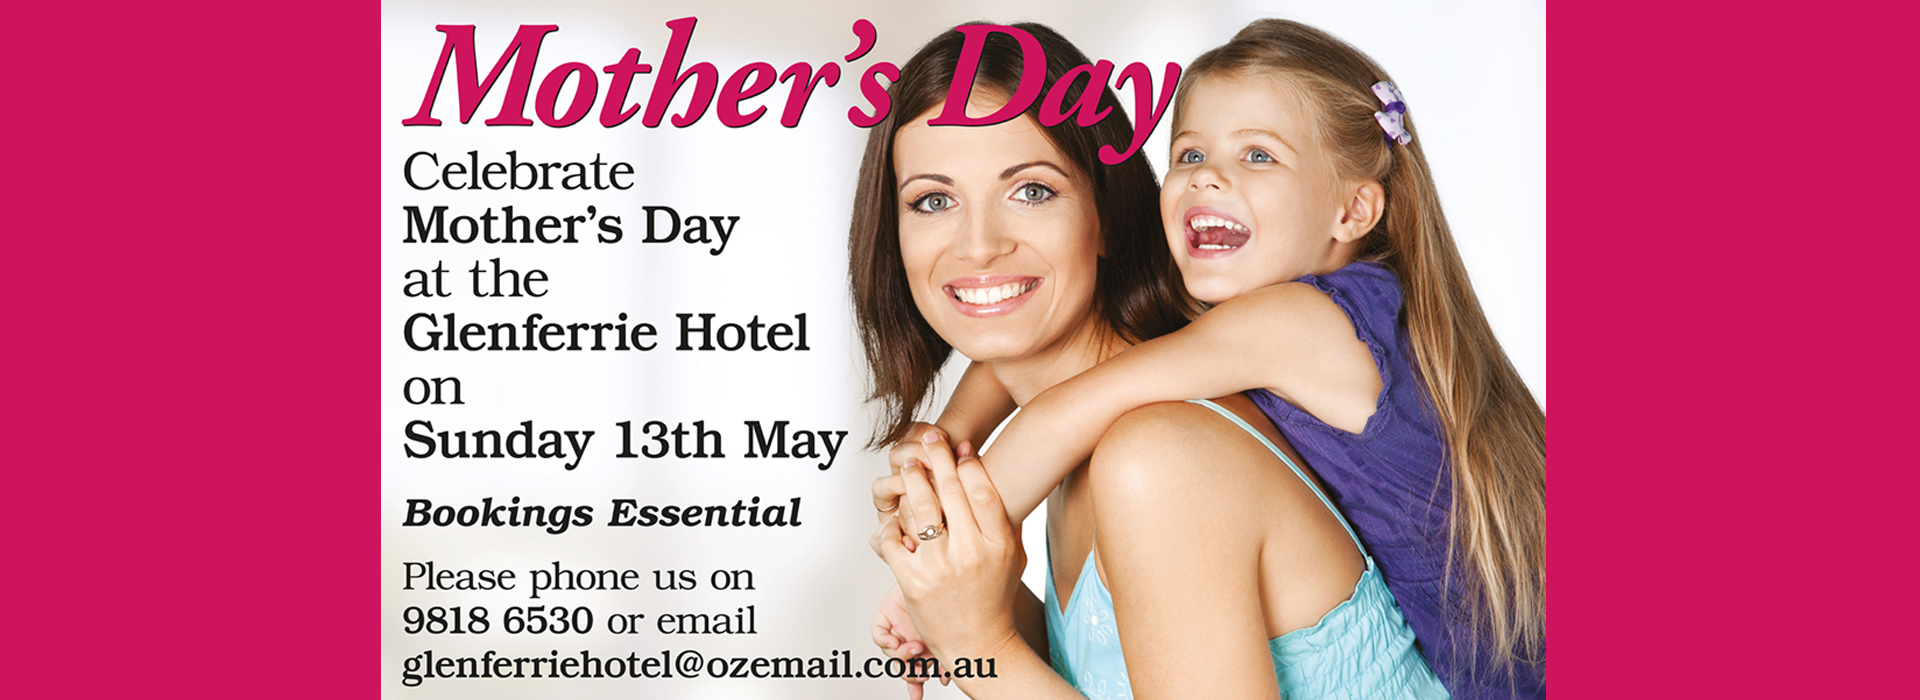 glenferrie hotel mothers day